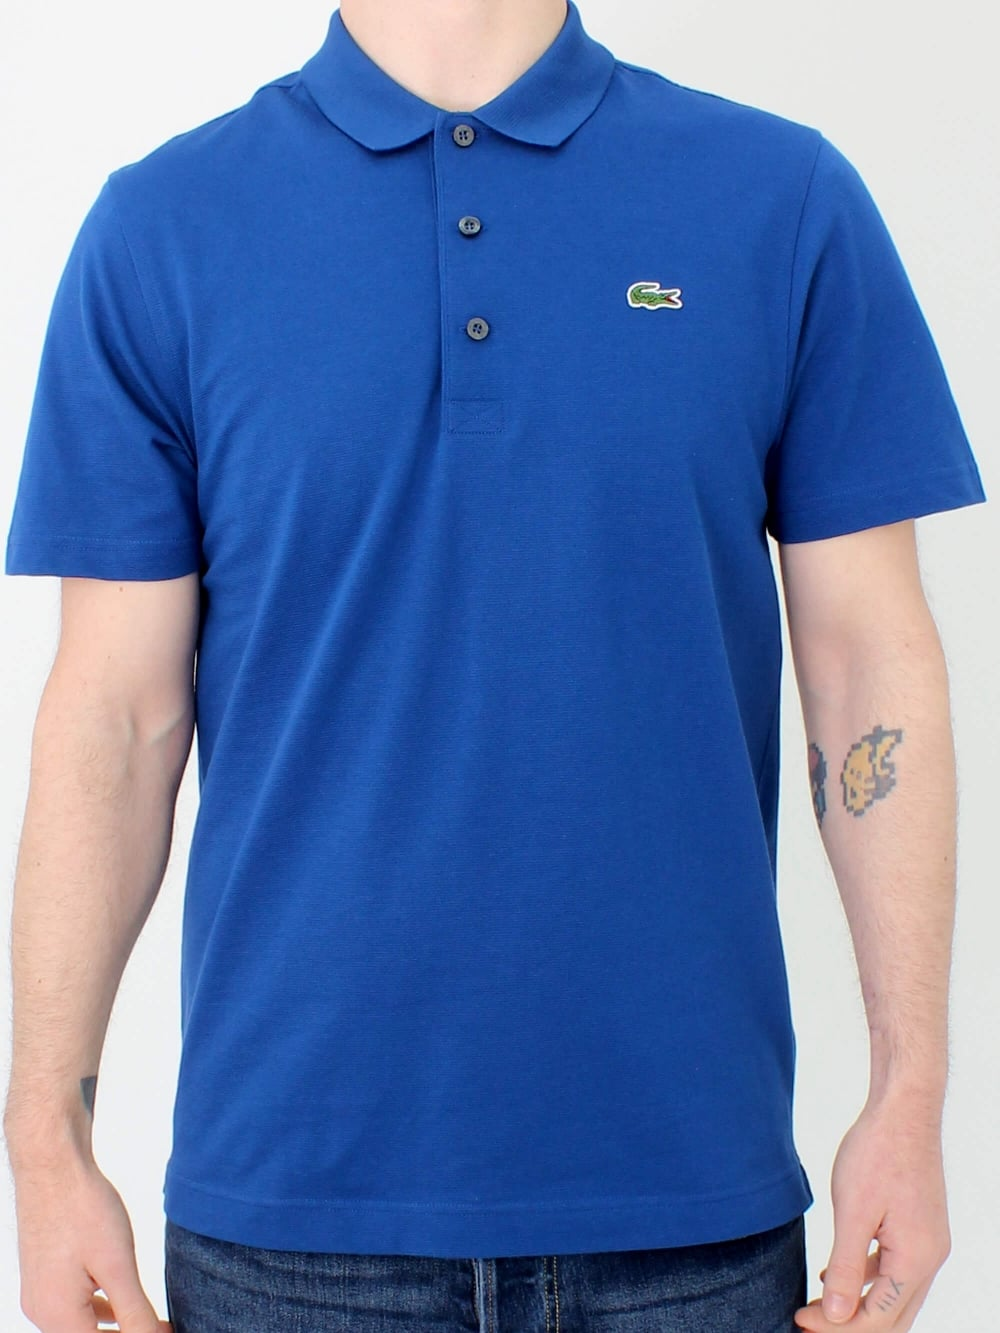 Lacoste Sport Classic Polo in Marino   Northern Threads 16106d3d0ca